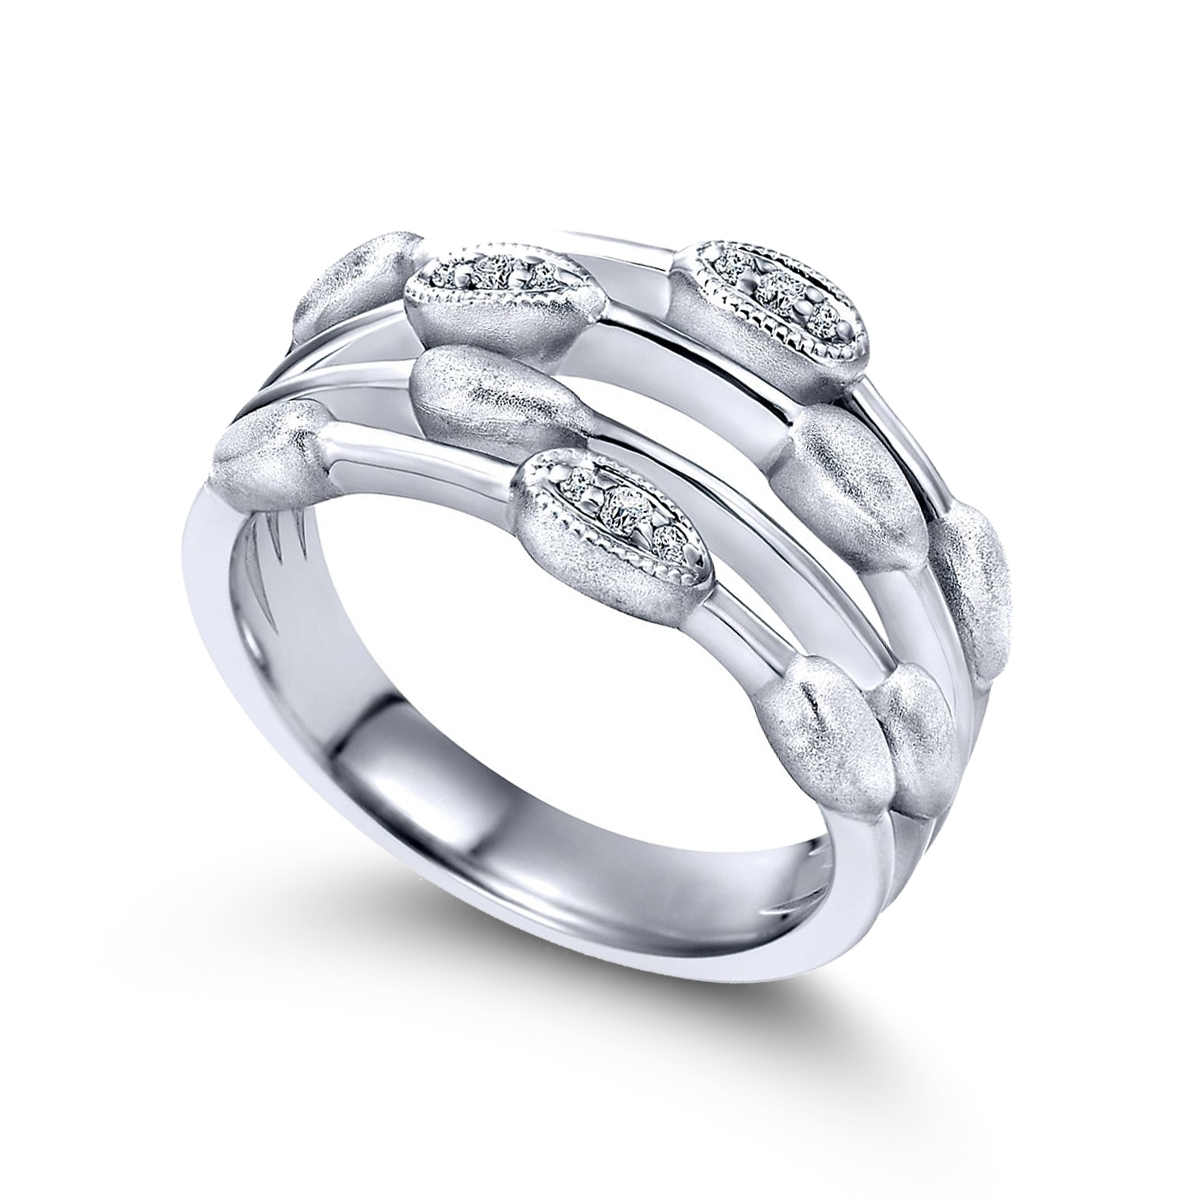 Sterling Four Row Diamond Accent Band | Friedman's Jewelers With Best And Newest Diamond Four Row Anniversary Bands In Sterling Silver (Gallery 3 of 15)